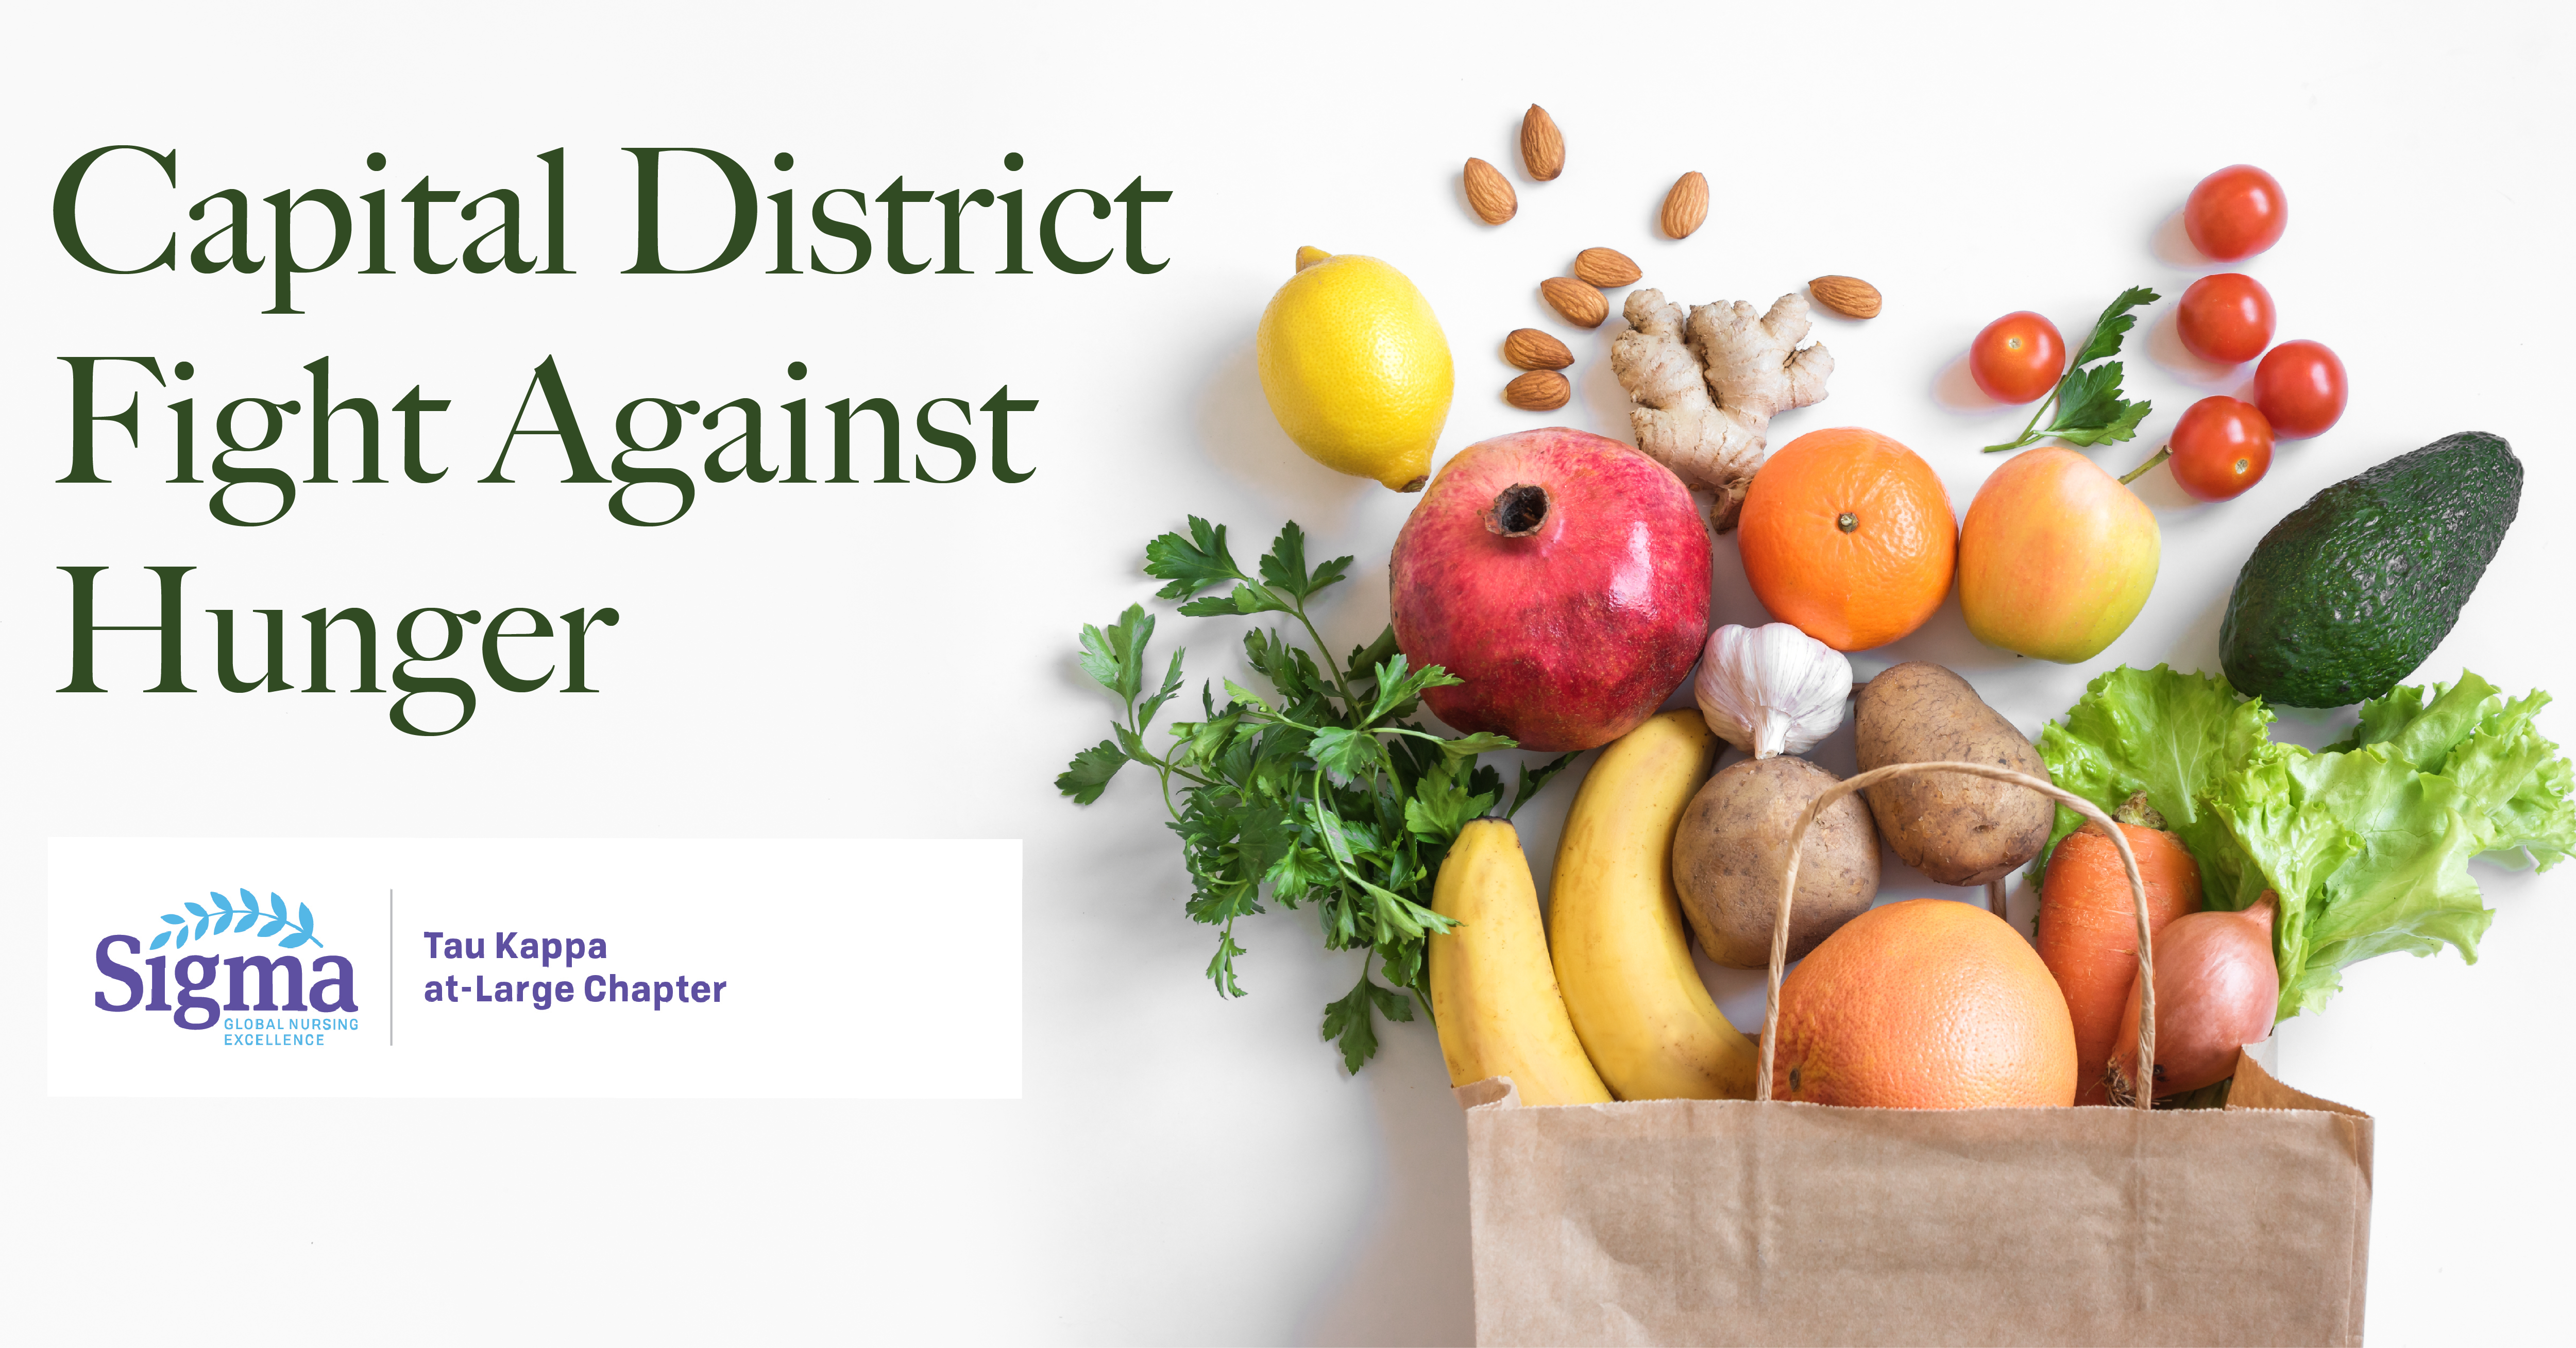 Capital District Fight Against Hunger